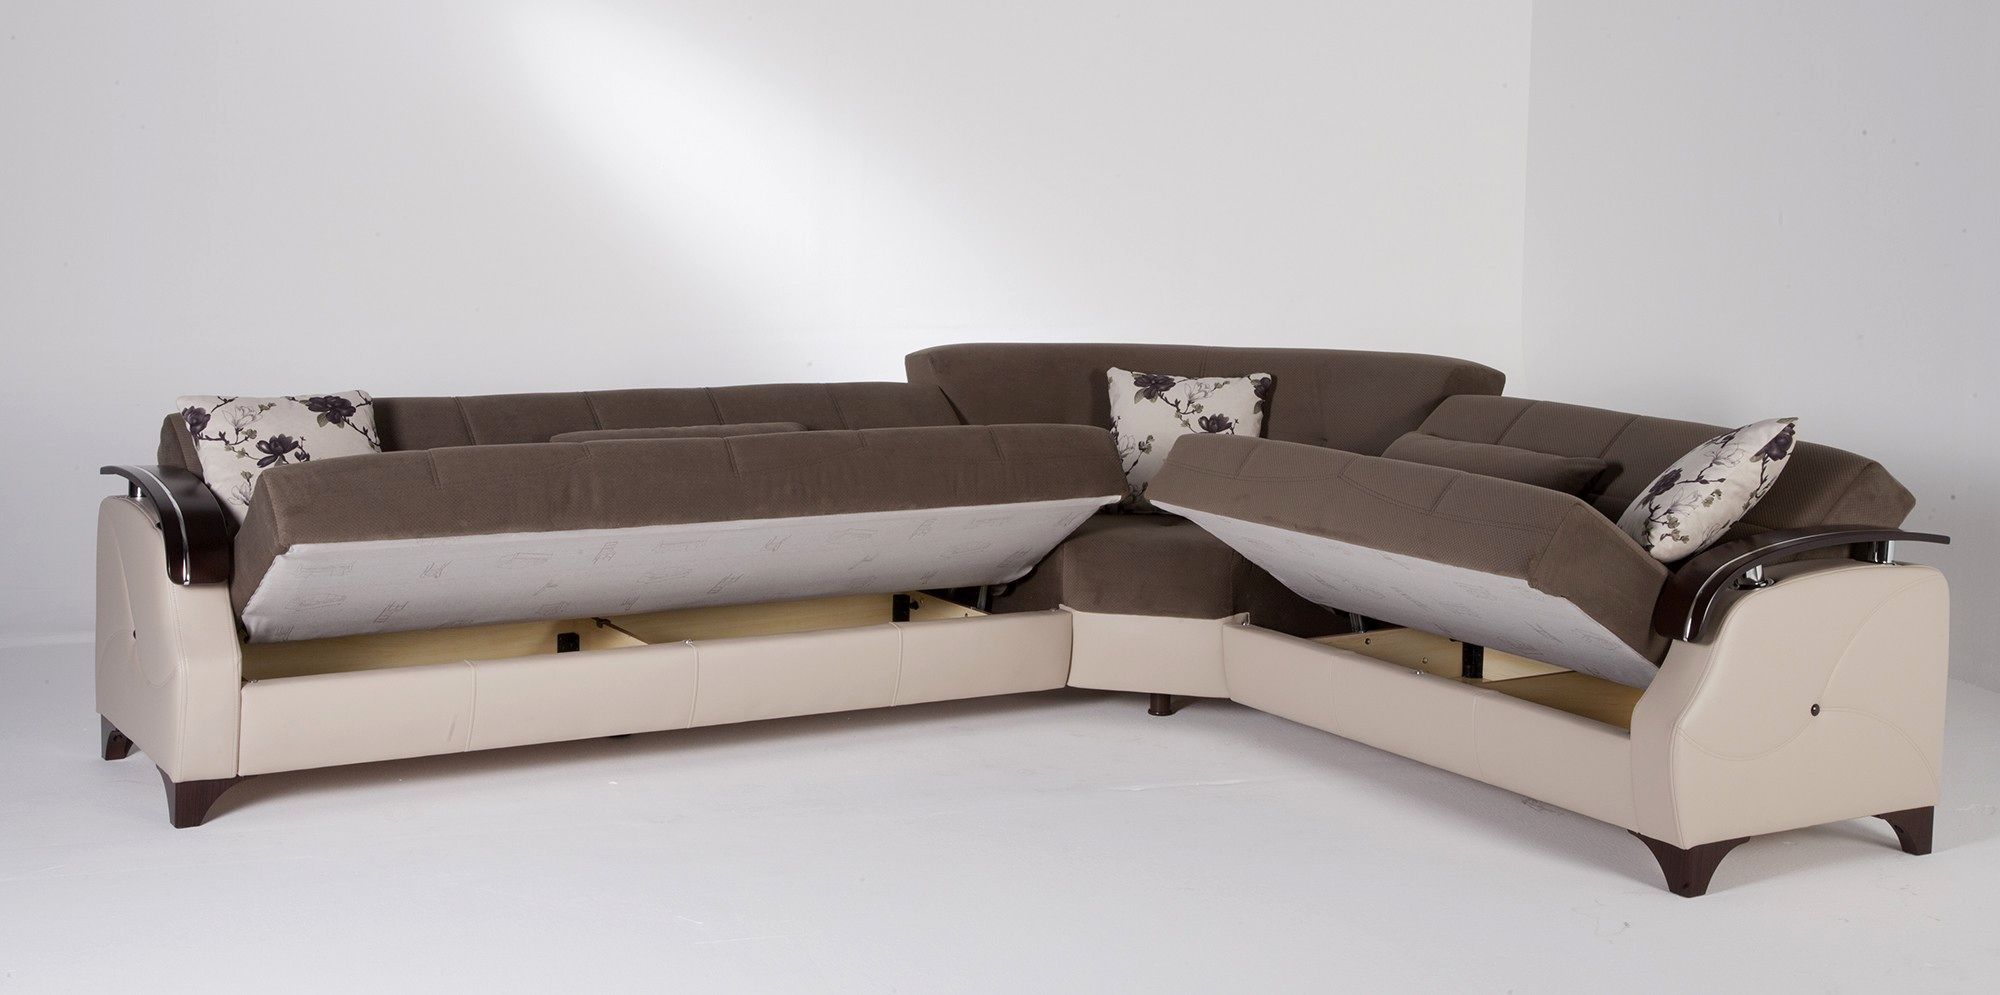 stunning sectional sofas ikea photograph-Elegant Sectional sofas Ikea Collection